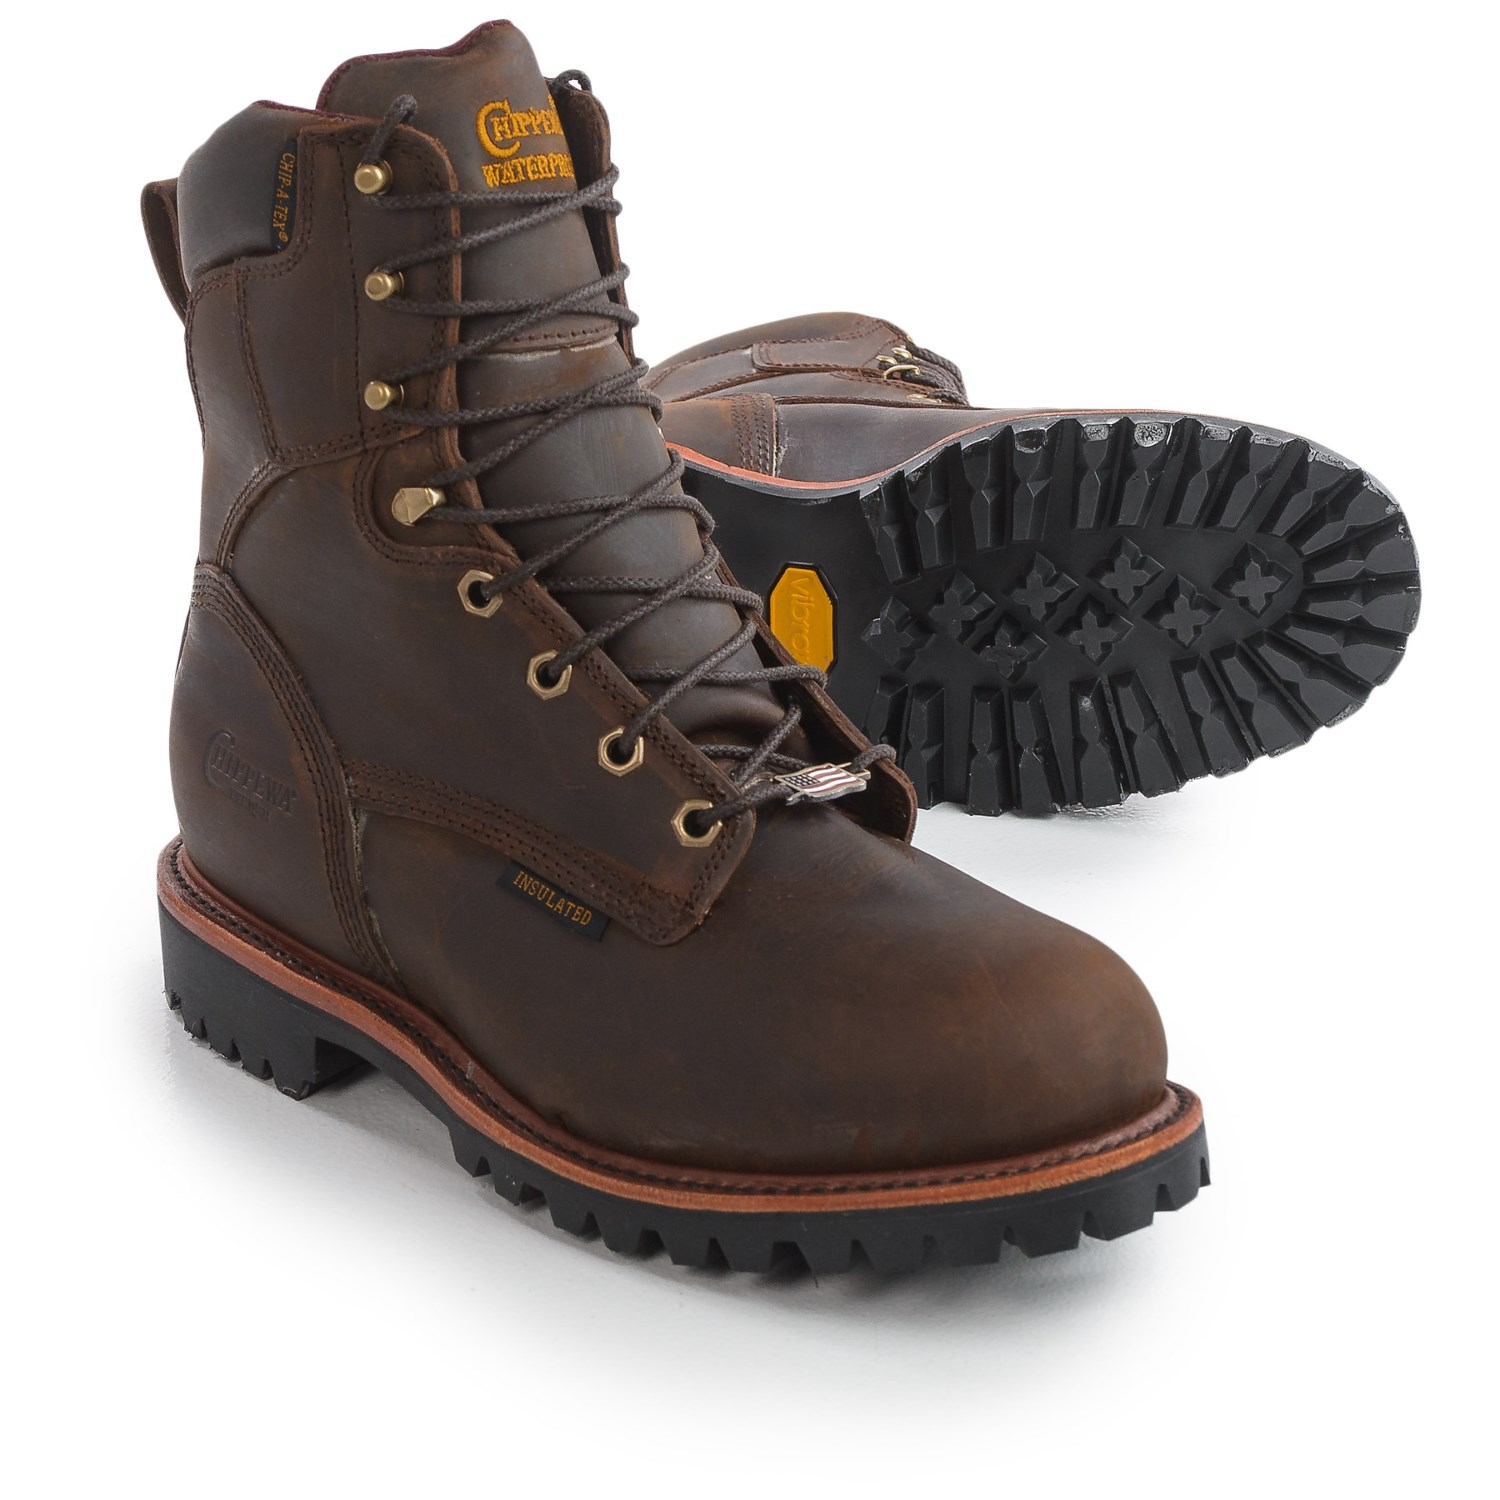 Chippewa Bay Crazy Horse Steel Toe Work Boots For Men